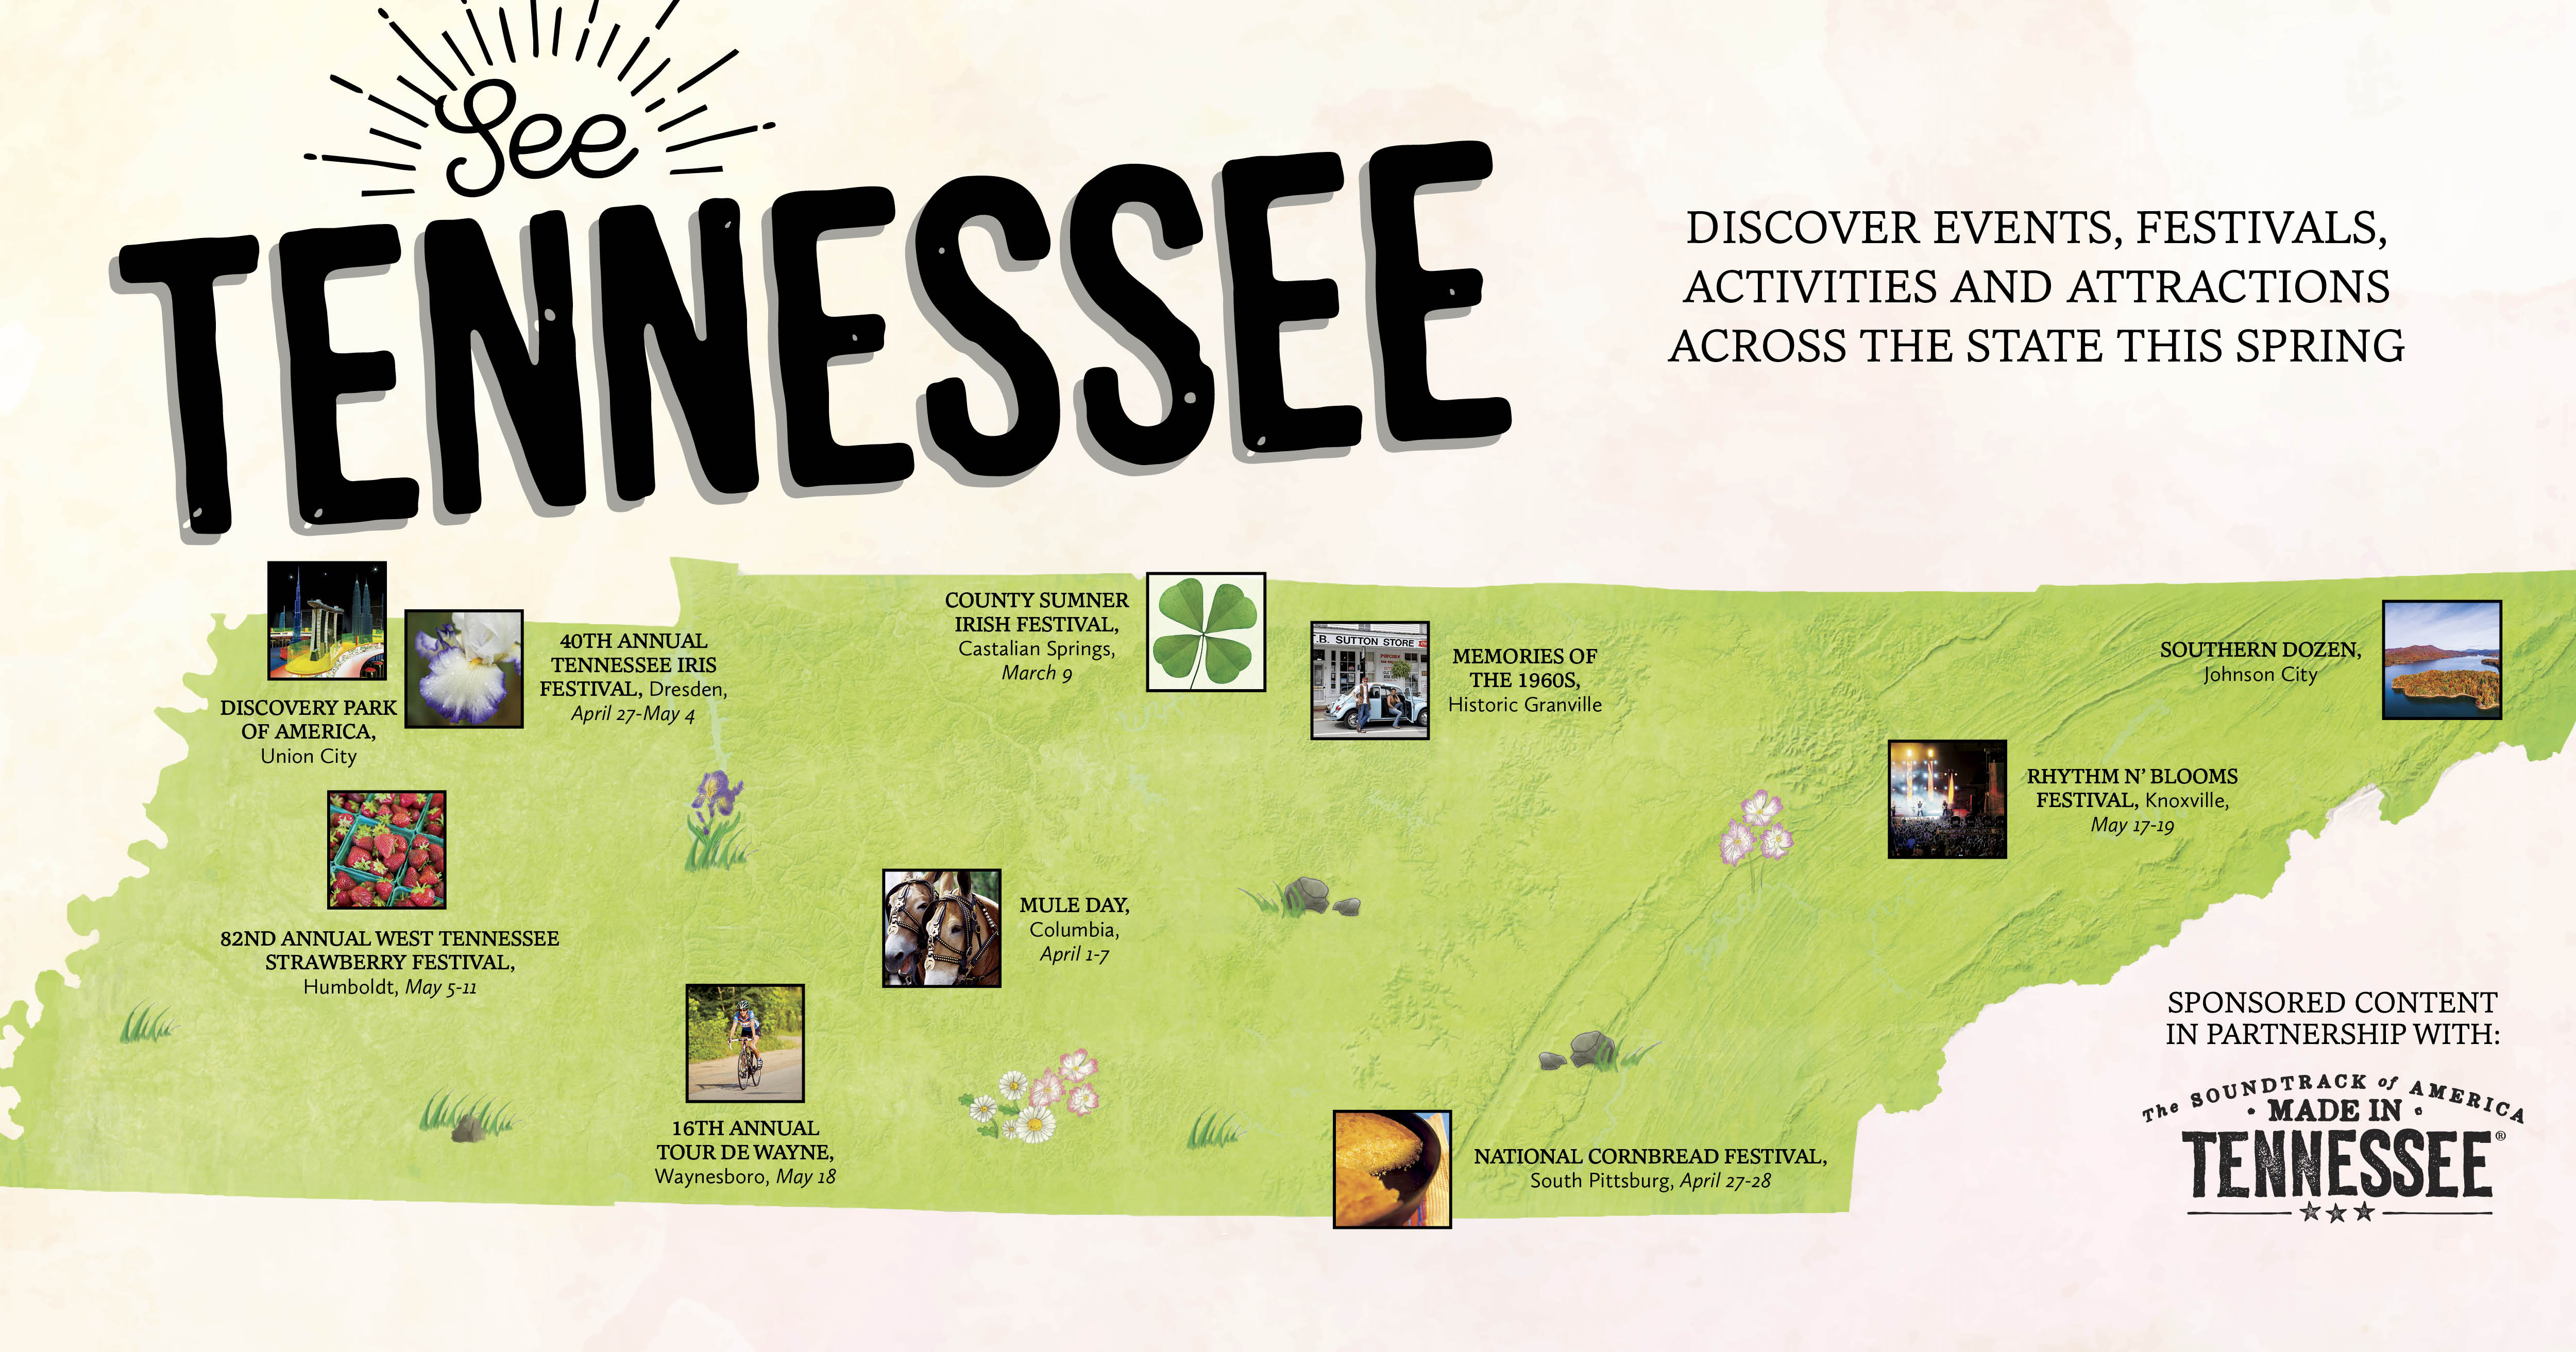 10 Places to Visit in Tennessee Spring 2019 (MAP ... on map for central time zone, map for world war 1, map the world, map for hawaii, map for milwaukee, map for canada, map for venezuela, map for delaware, map for texas, map for minneapolis, map for arizona, interactive map of tennessee, blank map of tennessee, map for albuquerque, map for nv, map for wv, map for massachusetts, map for wilson county, map for florida, map for los angeles,